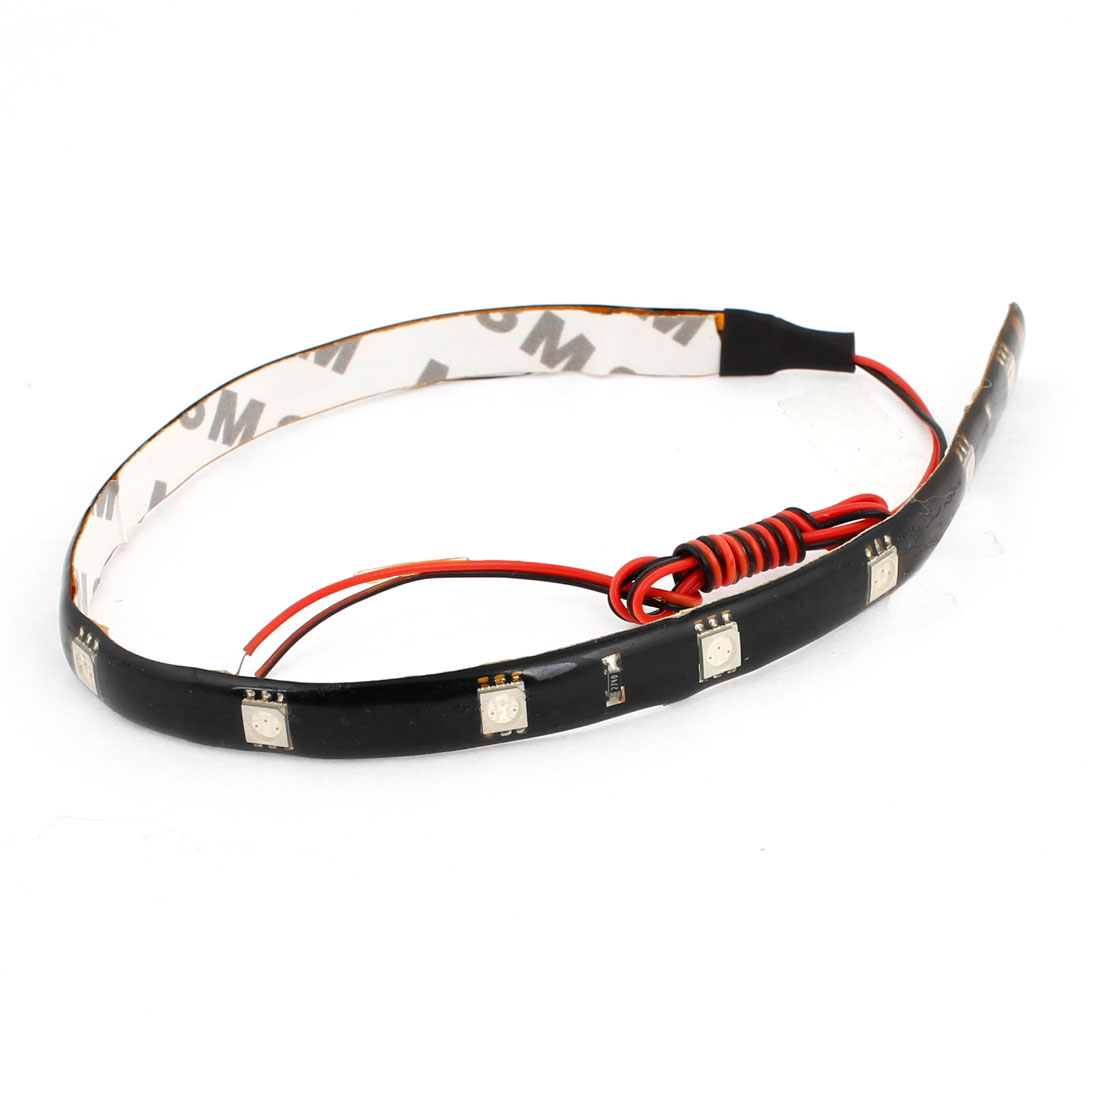 Adhesive Tape Red 12 5050 SMD Auto Car Flexible Decor LED Strip 30cm